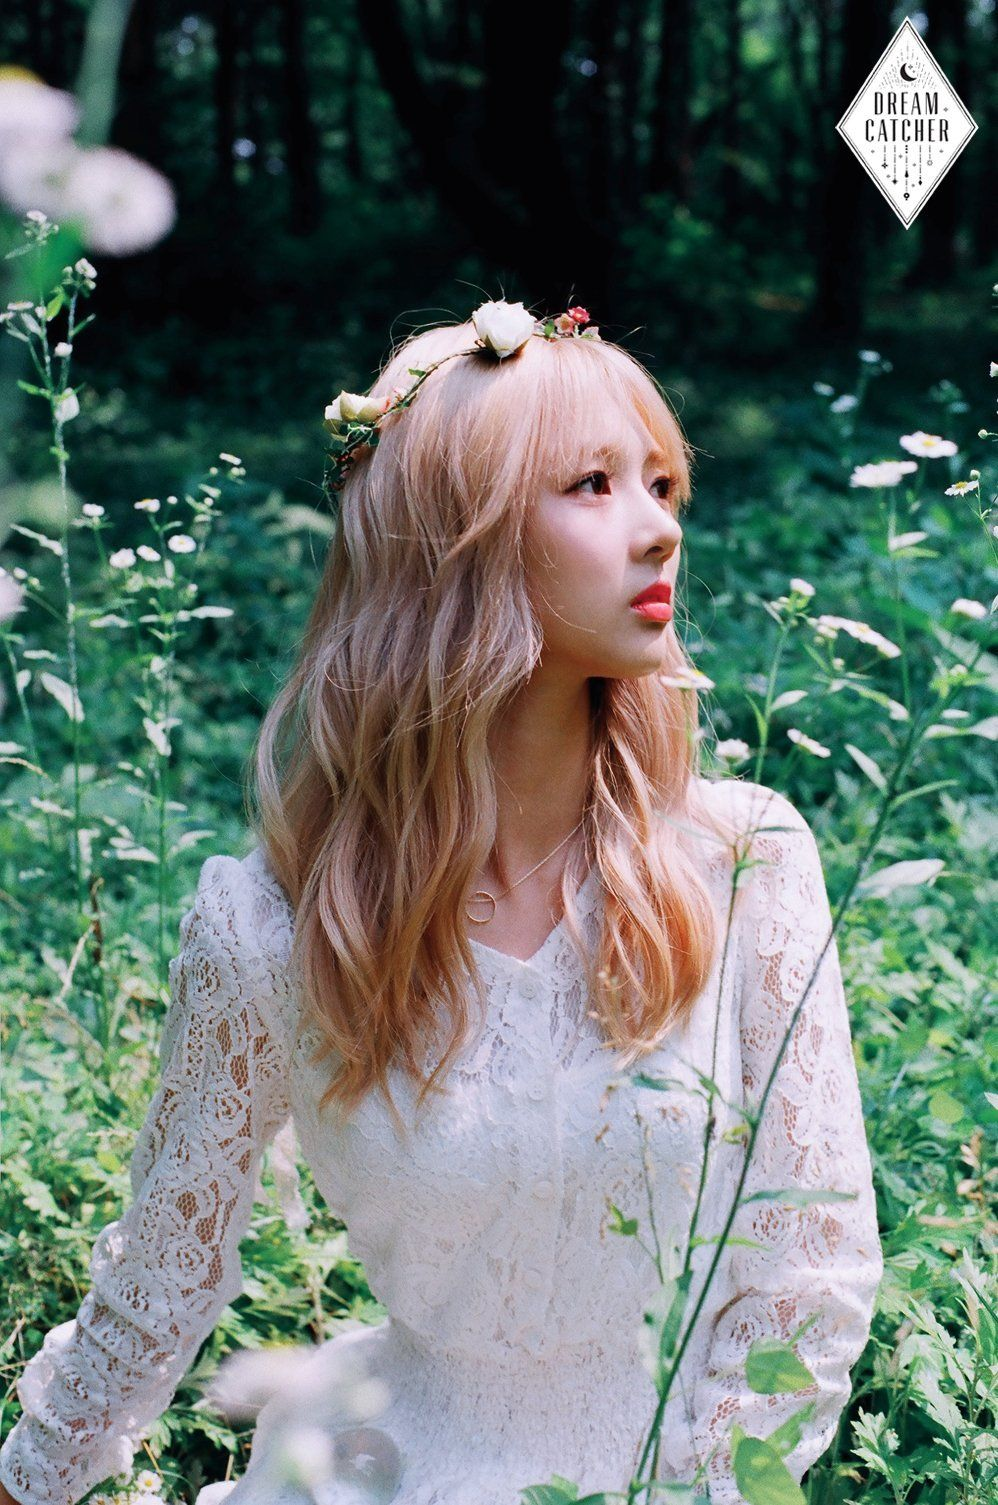 Yoo Hyeon - Dreamcatcher.  Another ex-Minx.  I must say it is difficult to bolt on 3 new members into an existing band but to date, I have been impressed by the slighter darker and mysterious tones of the new group.  Thumbs up from me. AMx